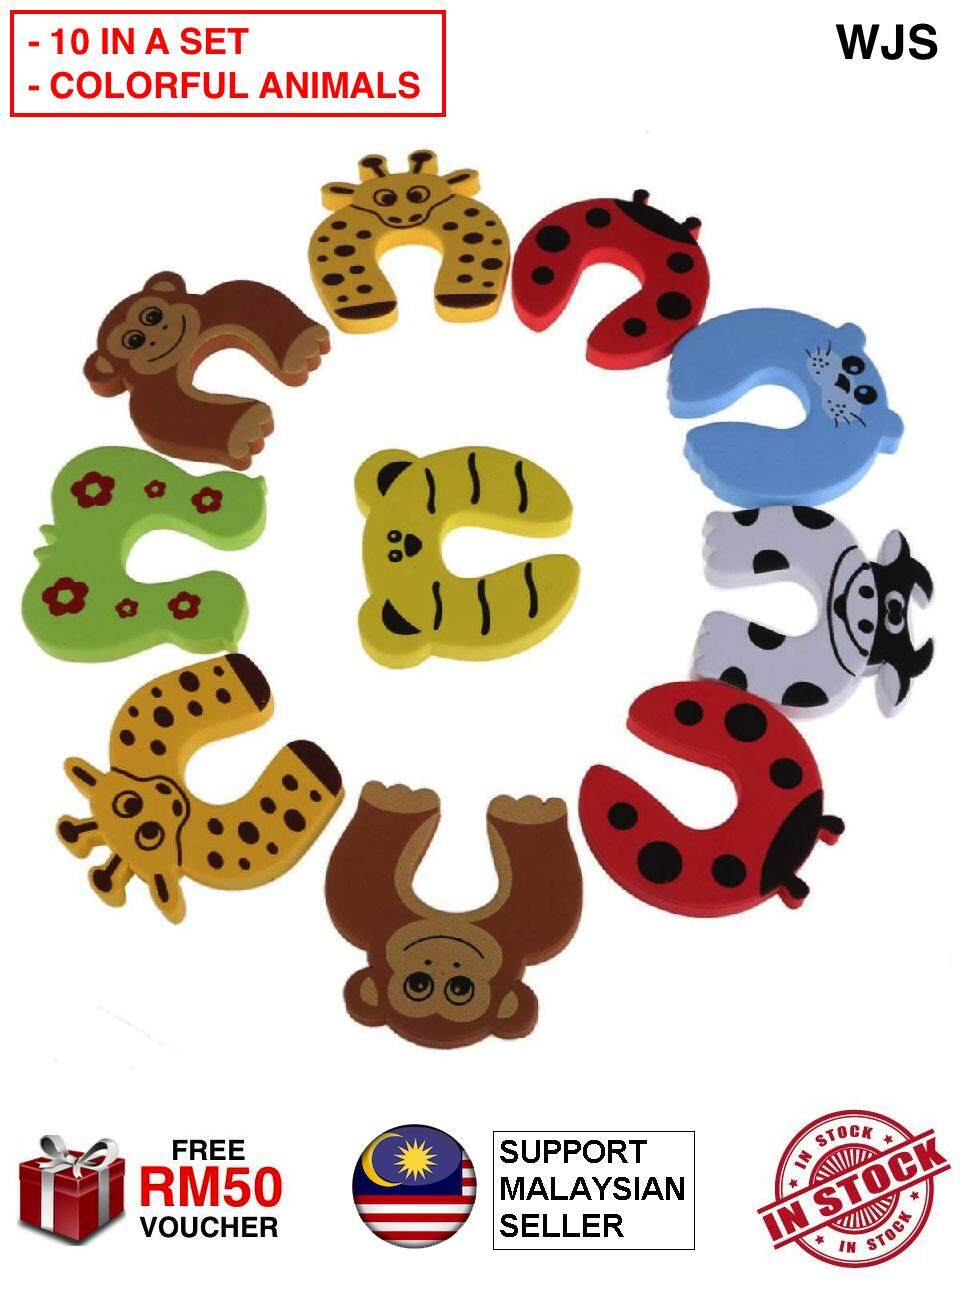 (COLORFUL ANIMALS DESIGN) WJS 10pcs 10 pcs Animal Cartoon Safety Door Stopper Clip Door Holder Drawer Baby Safety Protection Avoid Injury [FREE RM 50 VOUCHER]